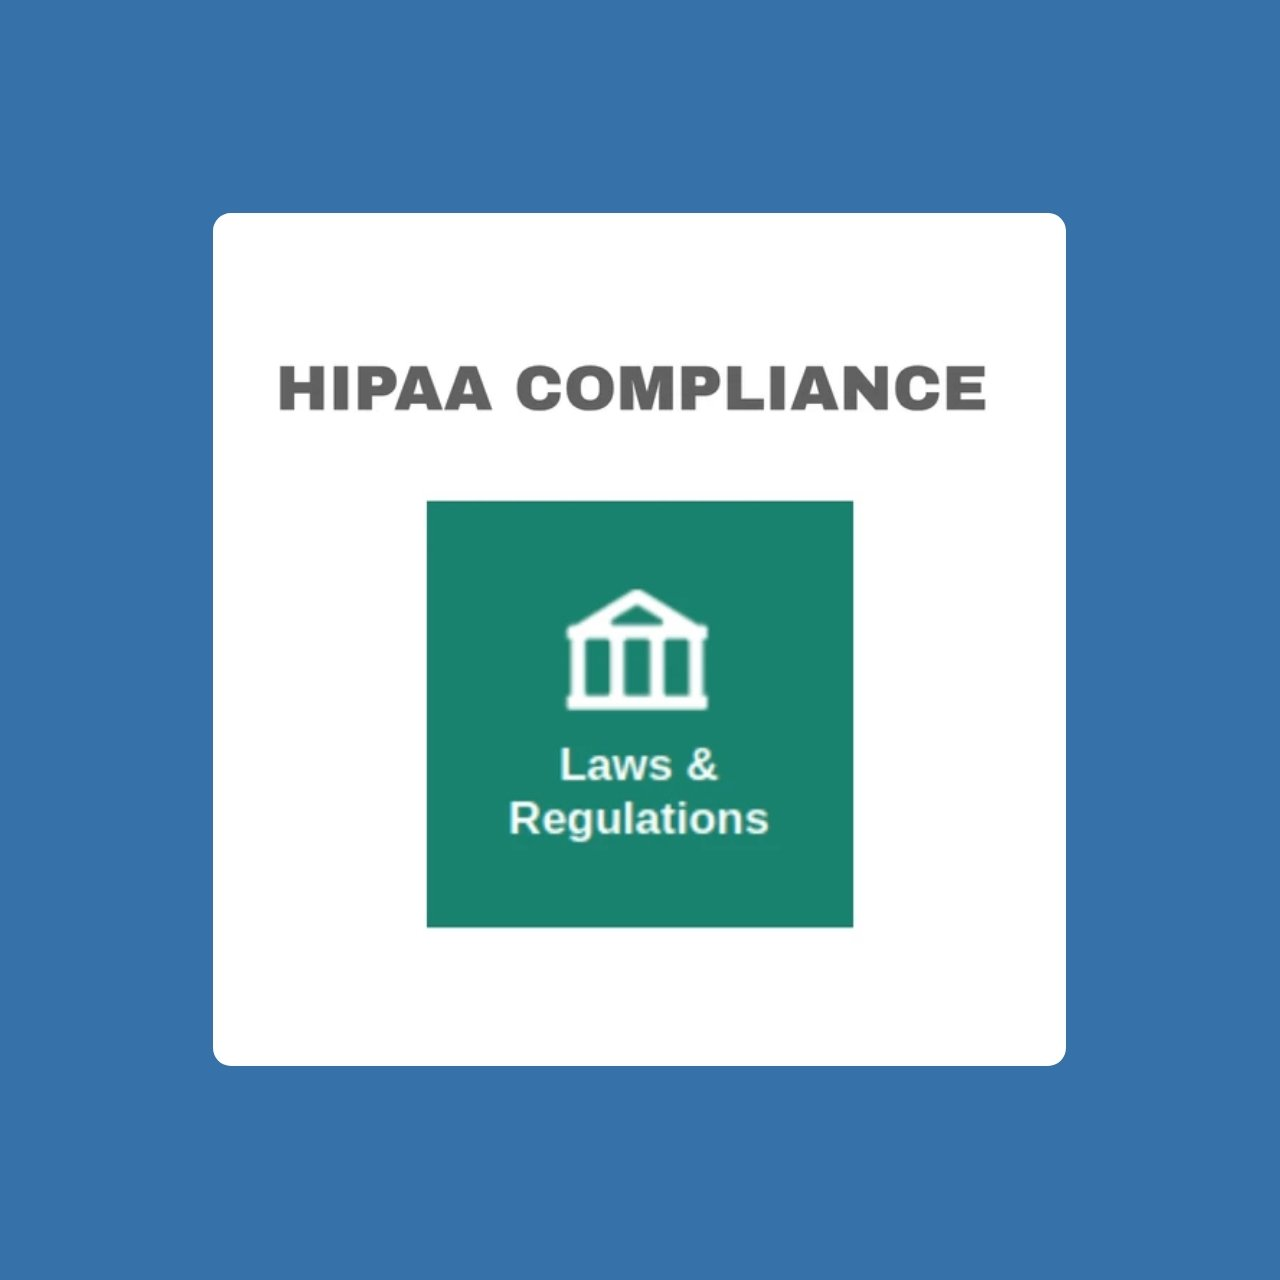 2020 / 2021 Renewed Computers and HIPAA Compliance Deadline